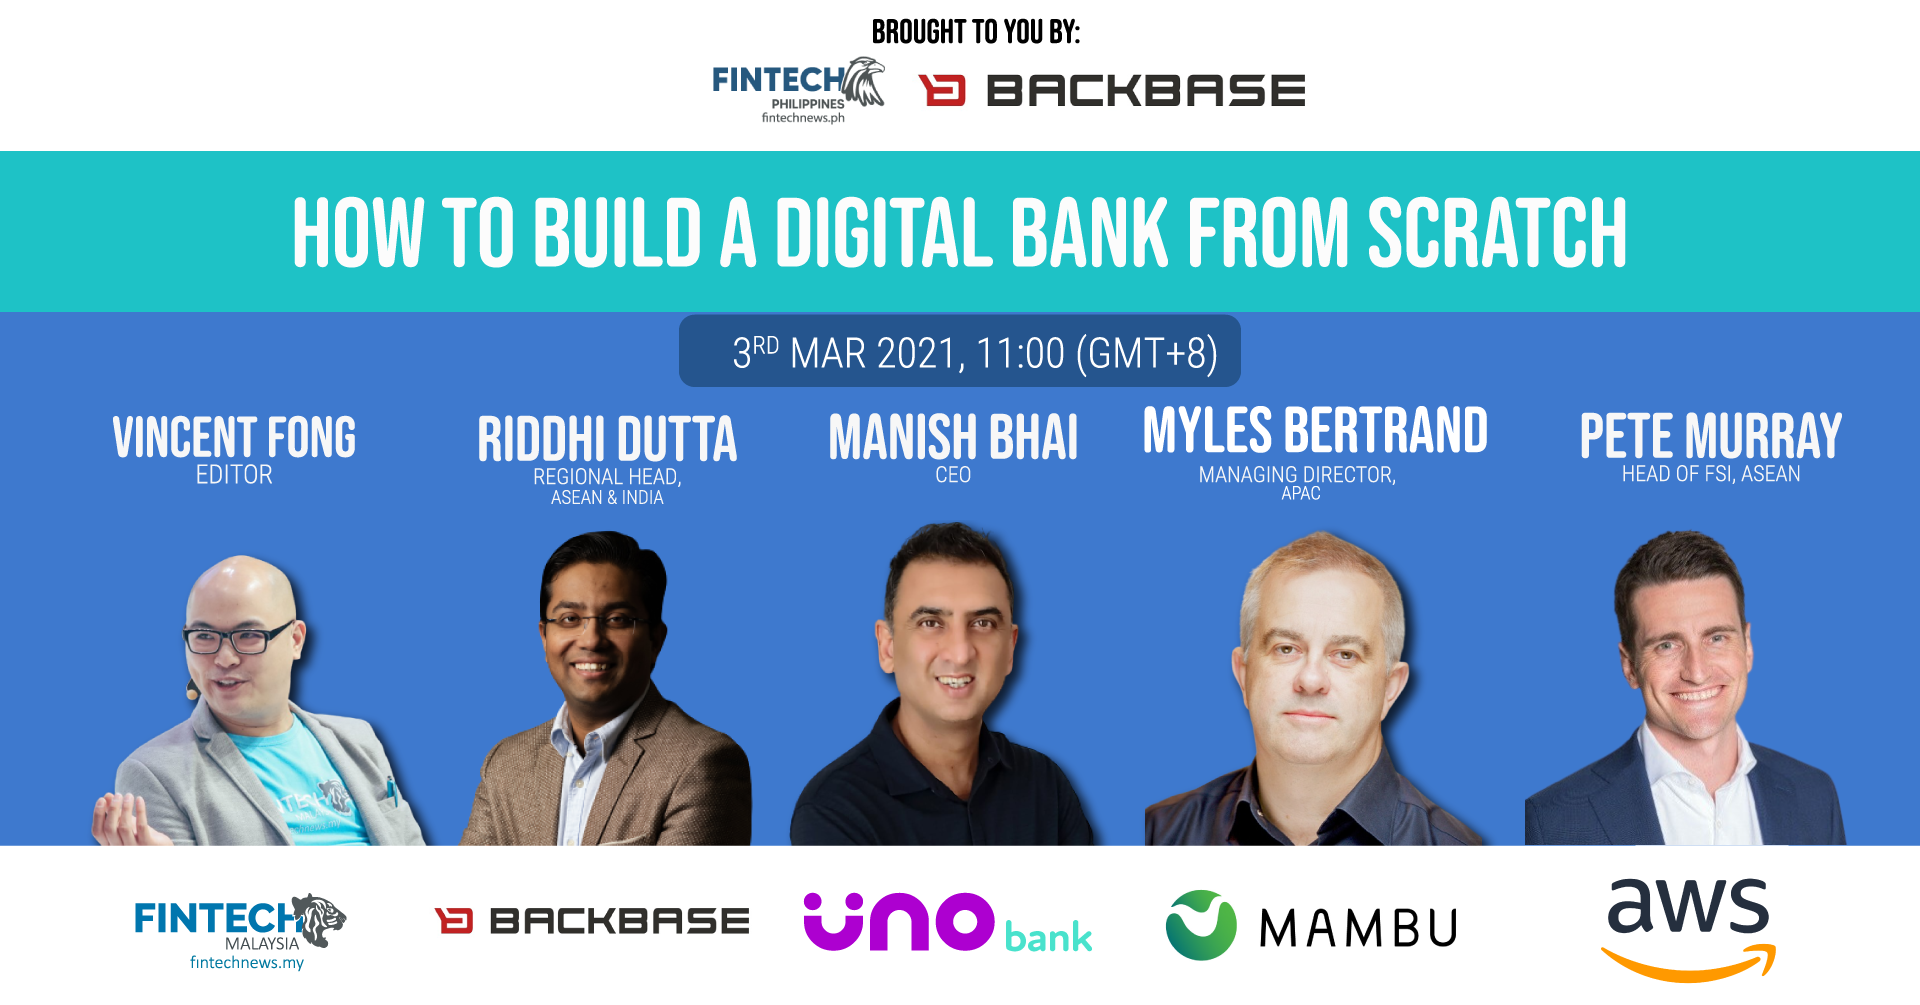 How to Build a Digital Bank from Scratch